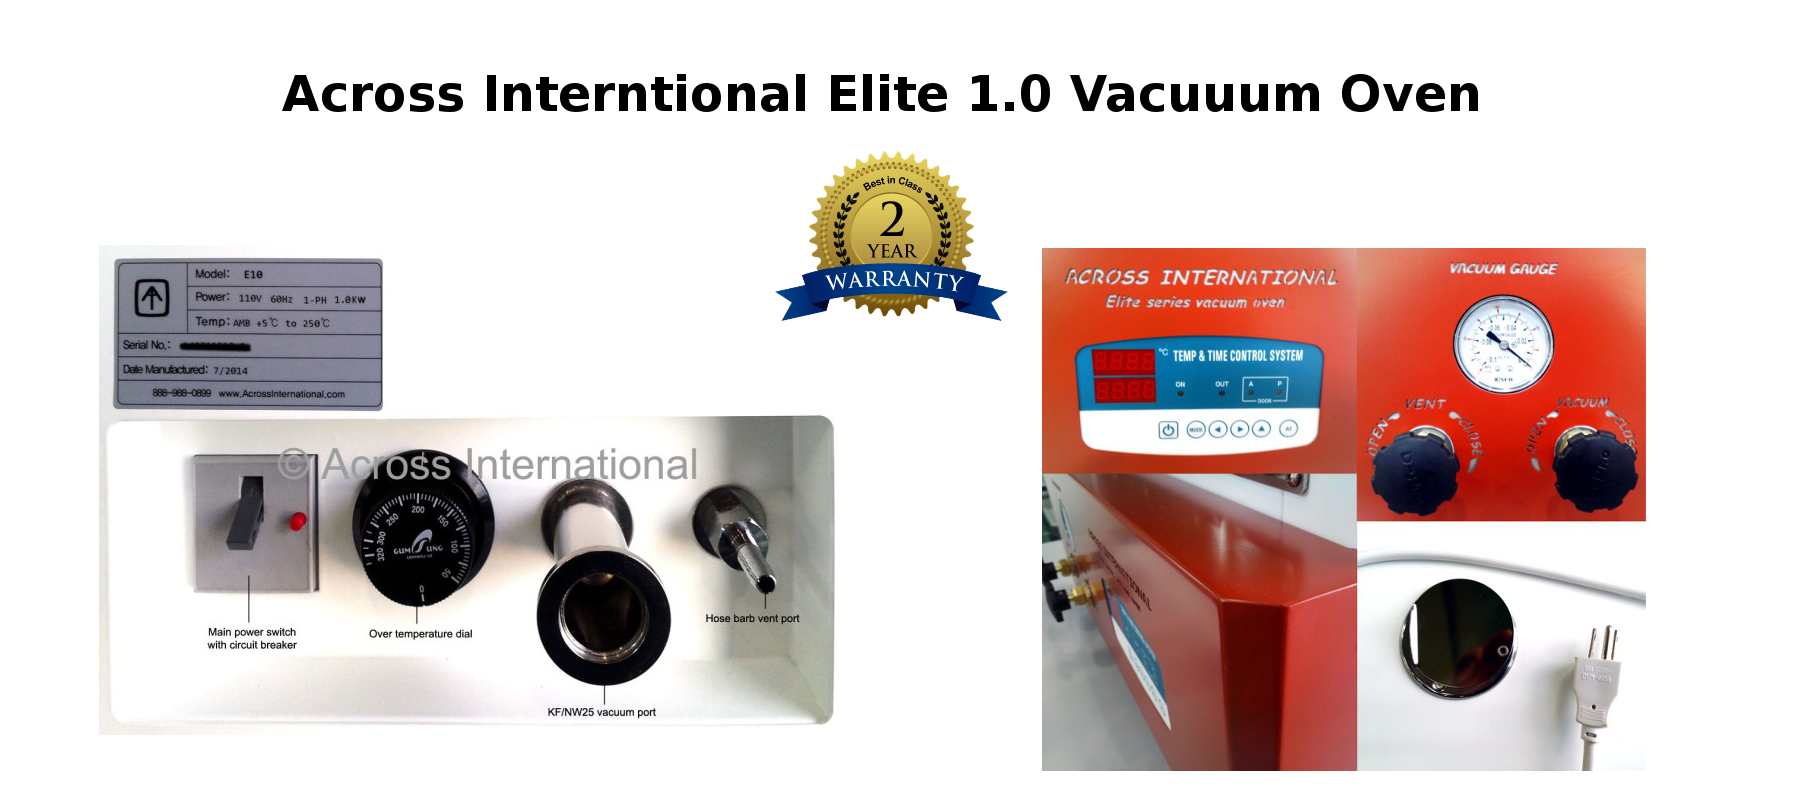 acrossinternational10eliteovenvacuum